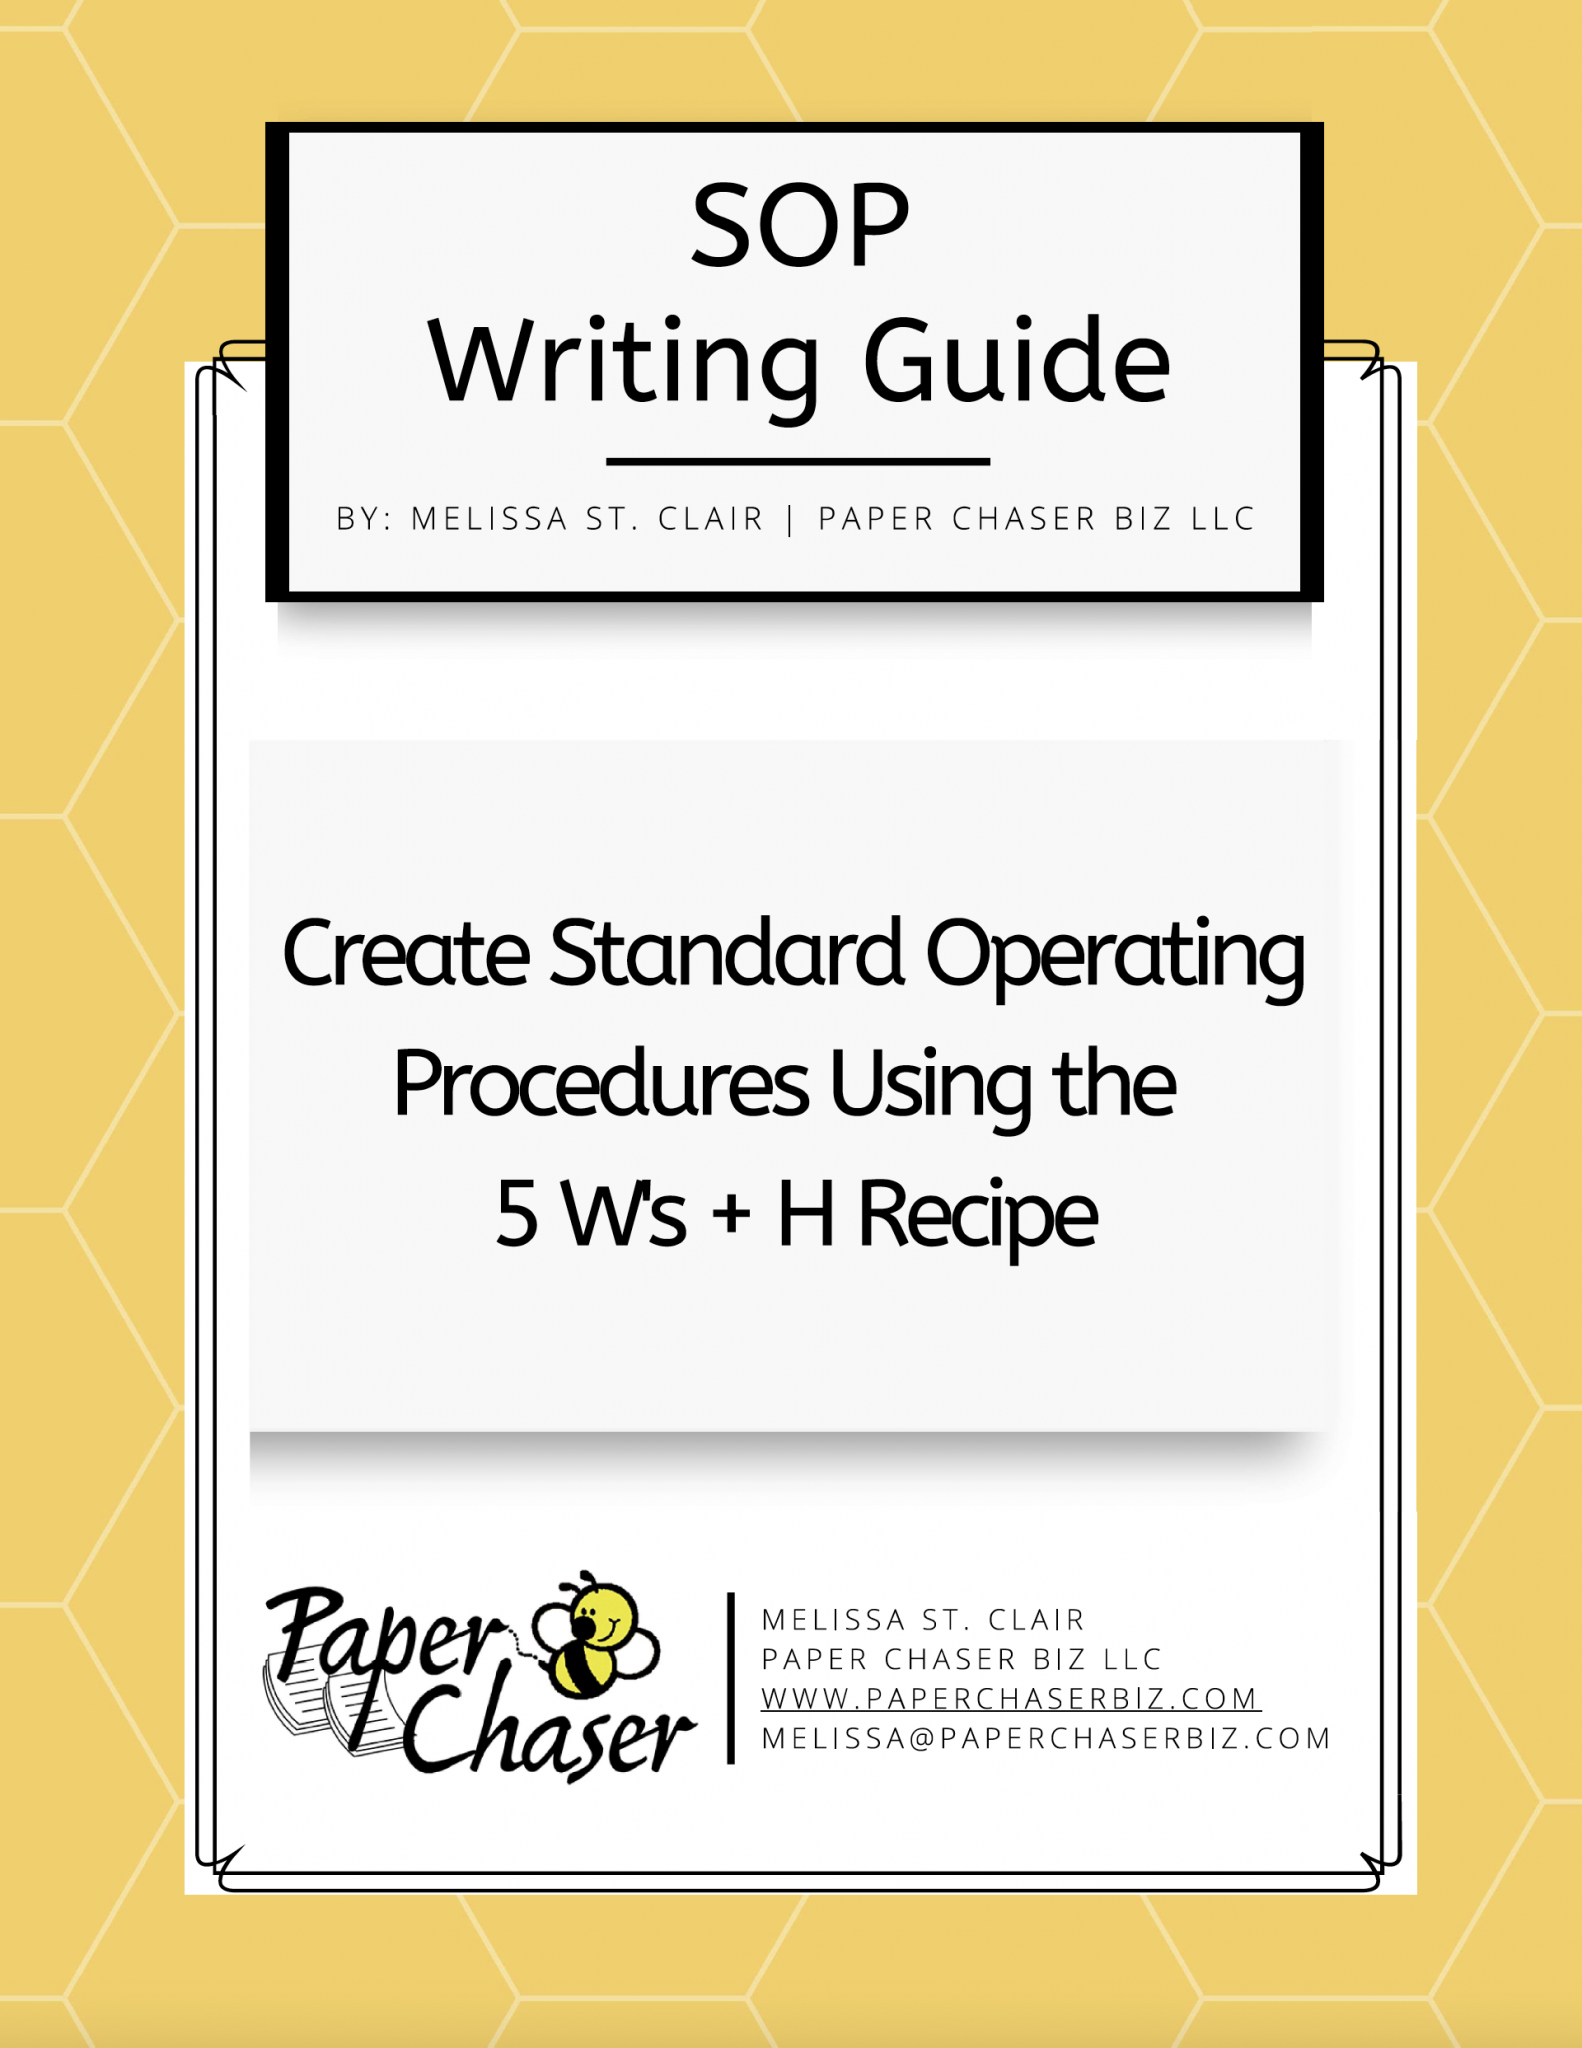 SOP Writing Guide